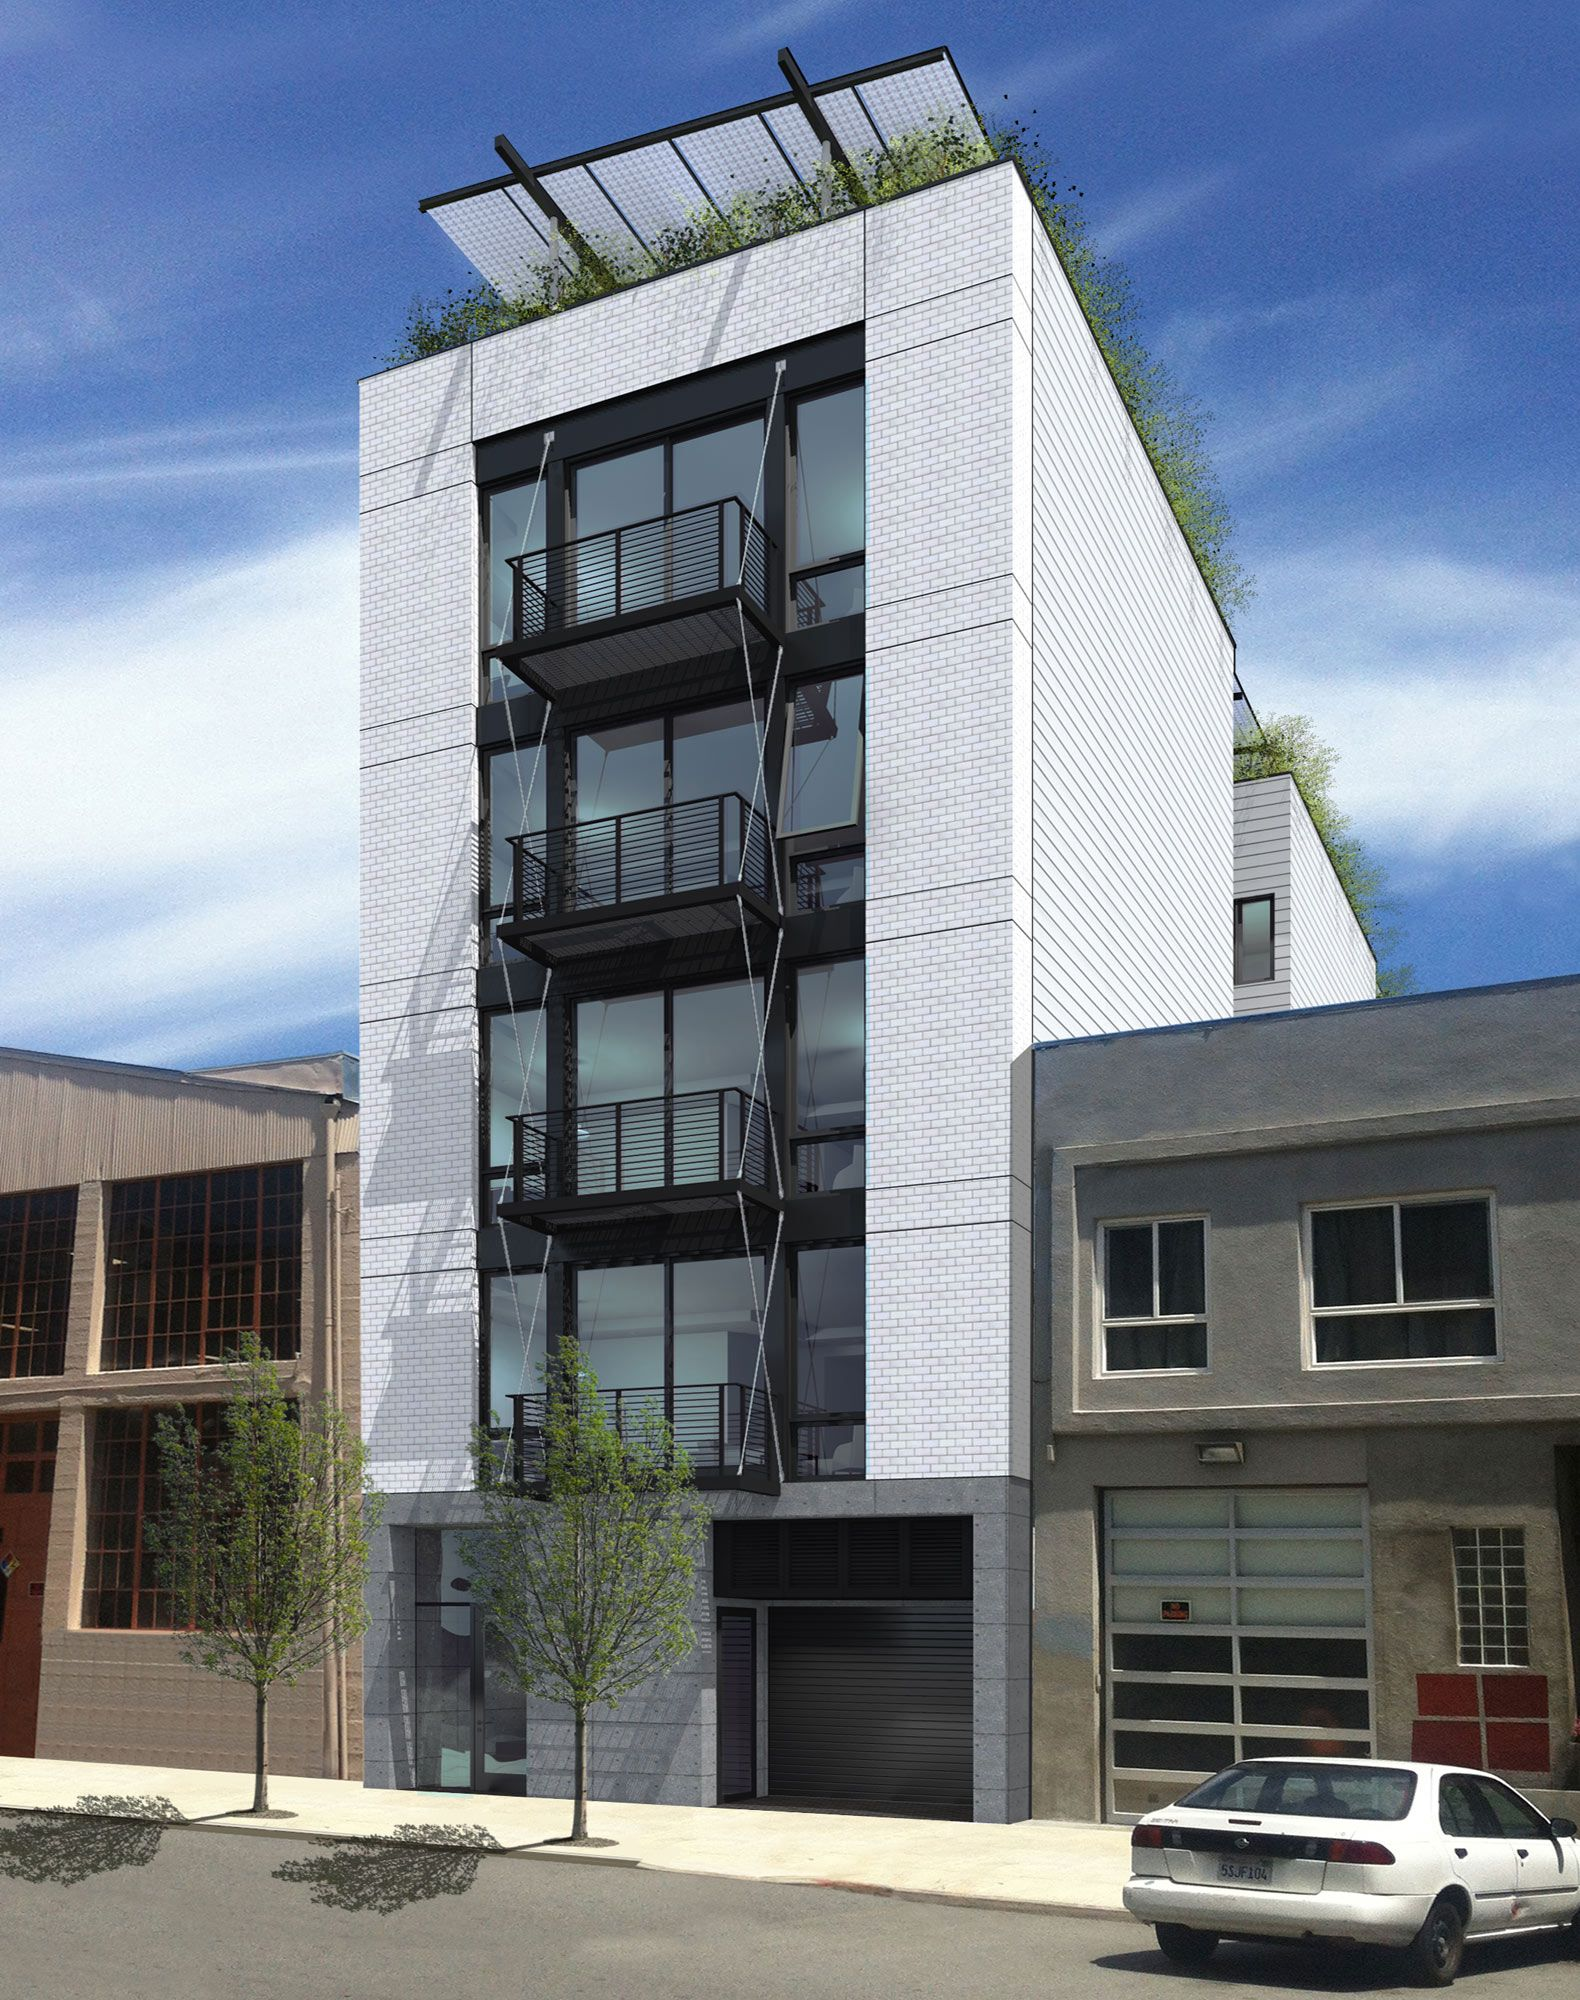 San francisco 39 s first passive house apartment complex for Small apartment building design